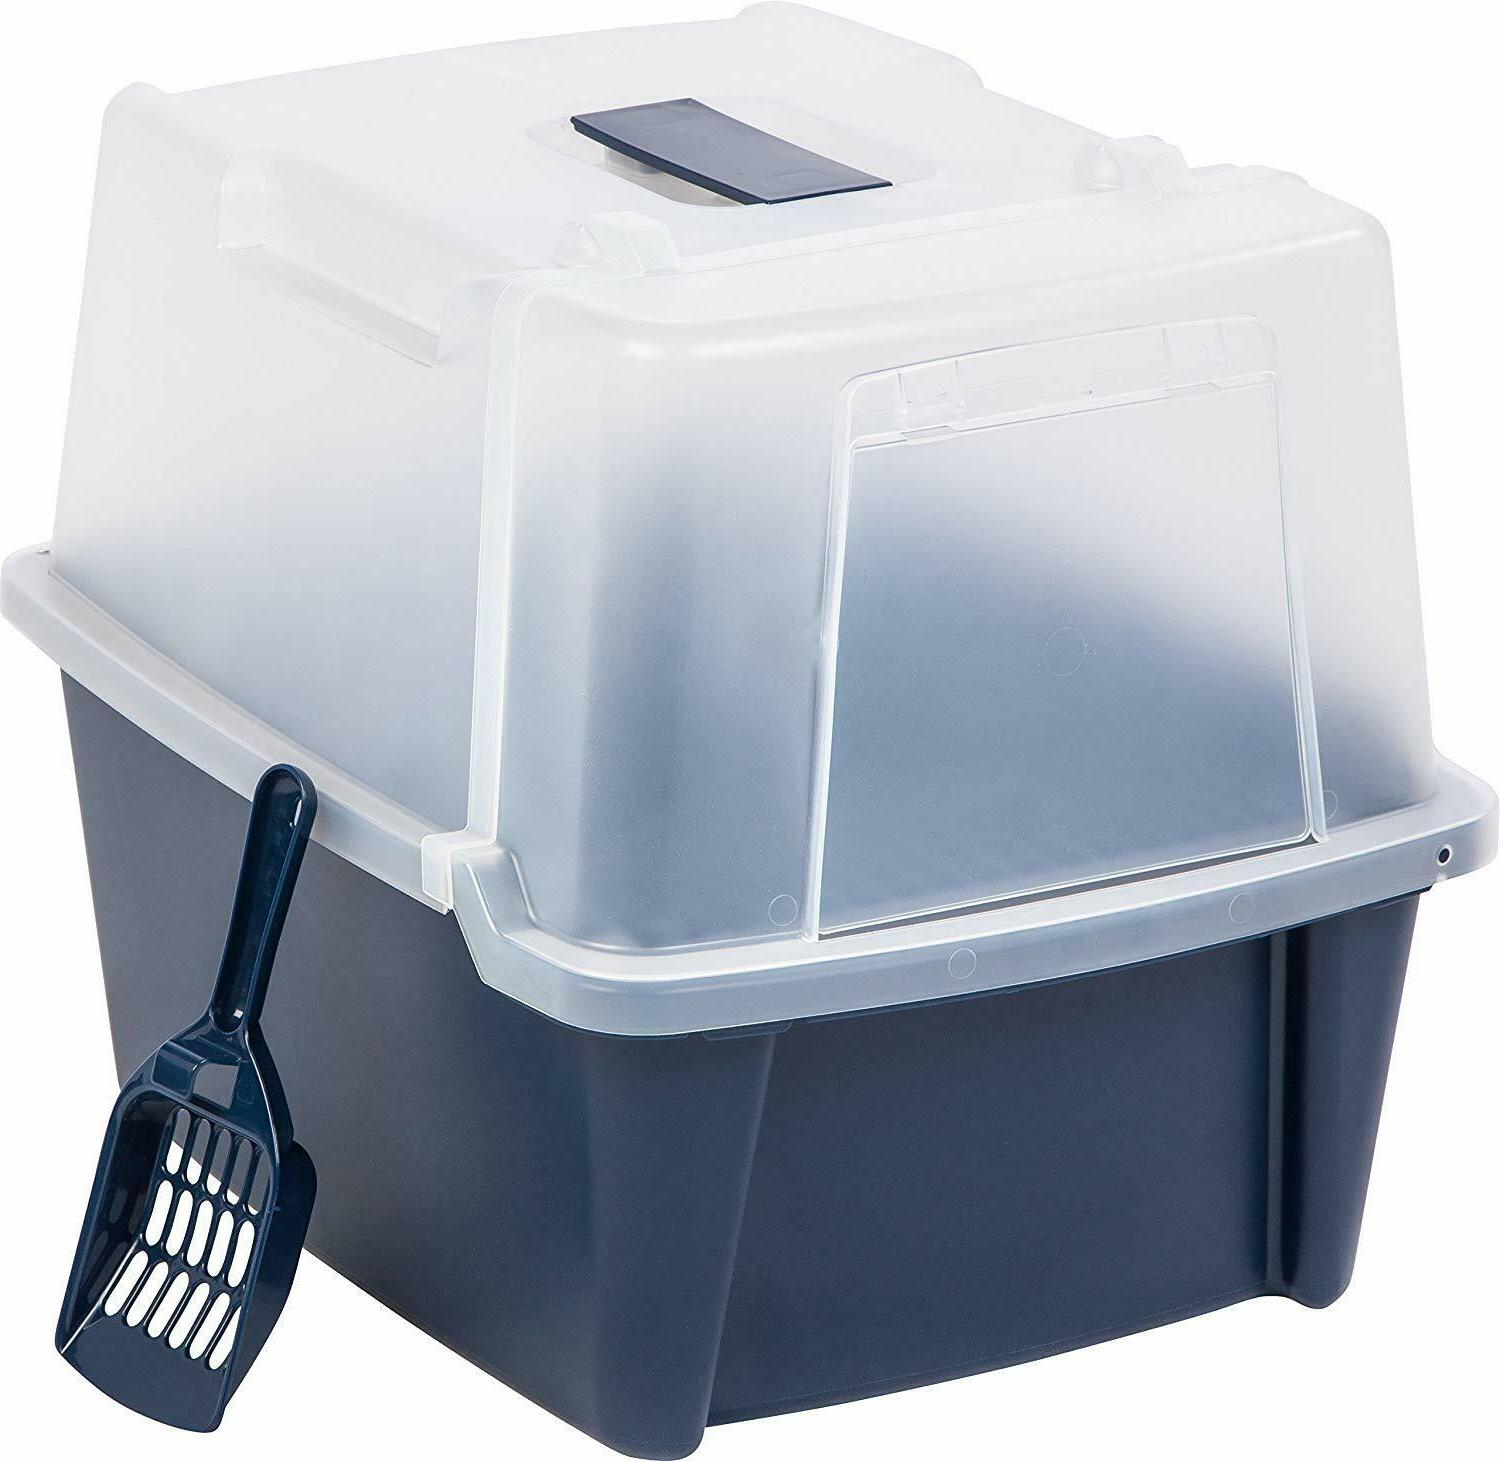 Tray Enclosed Hooded